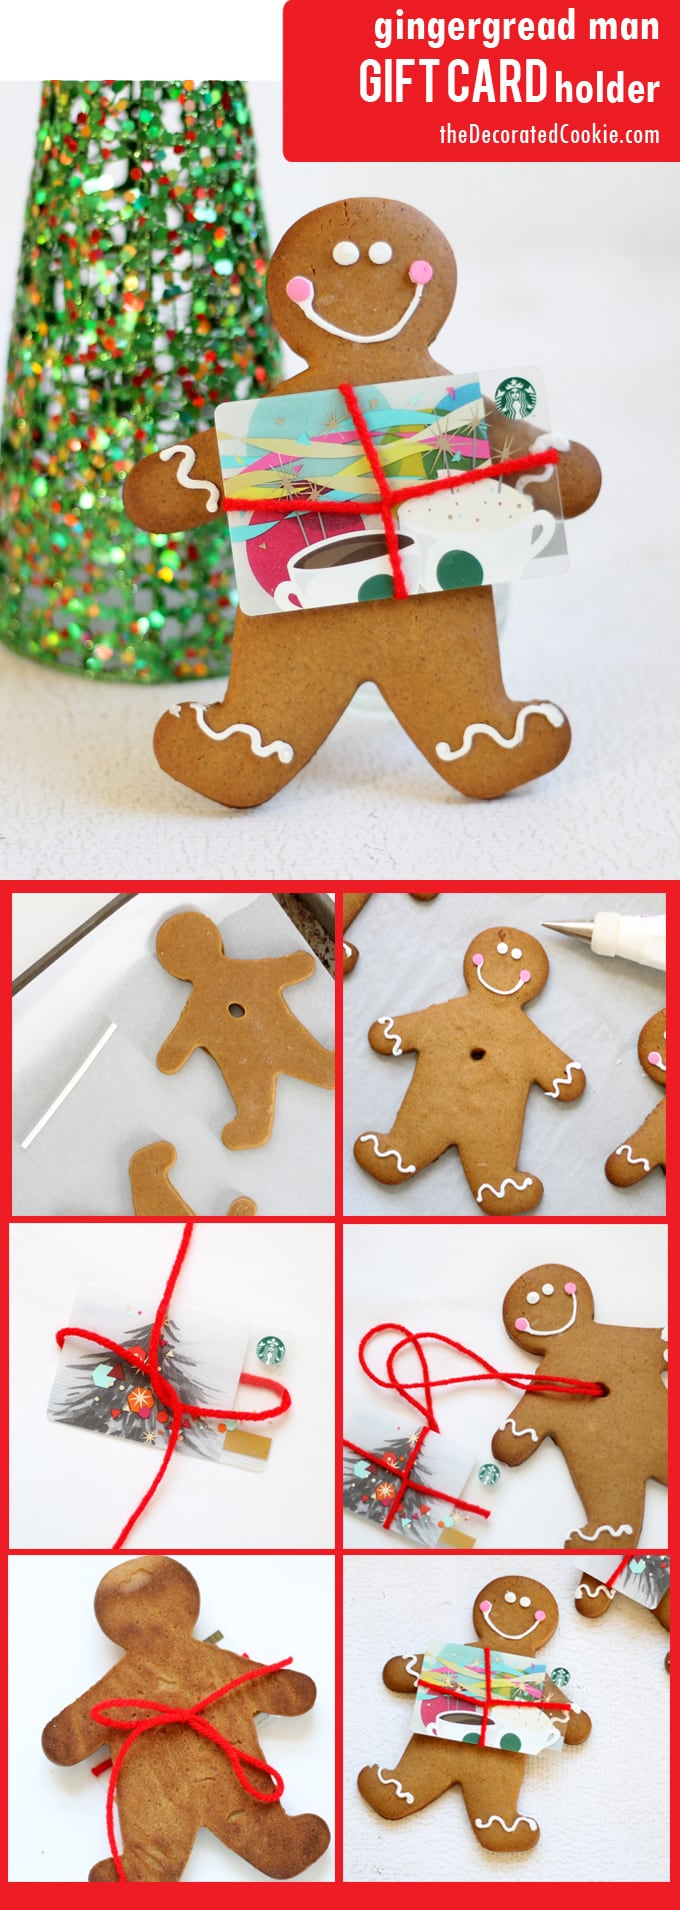 gingerbread man gift card holder